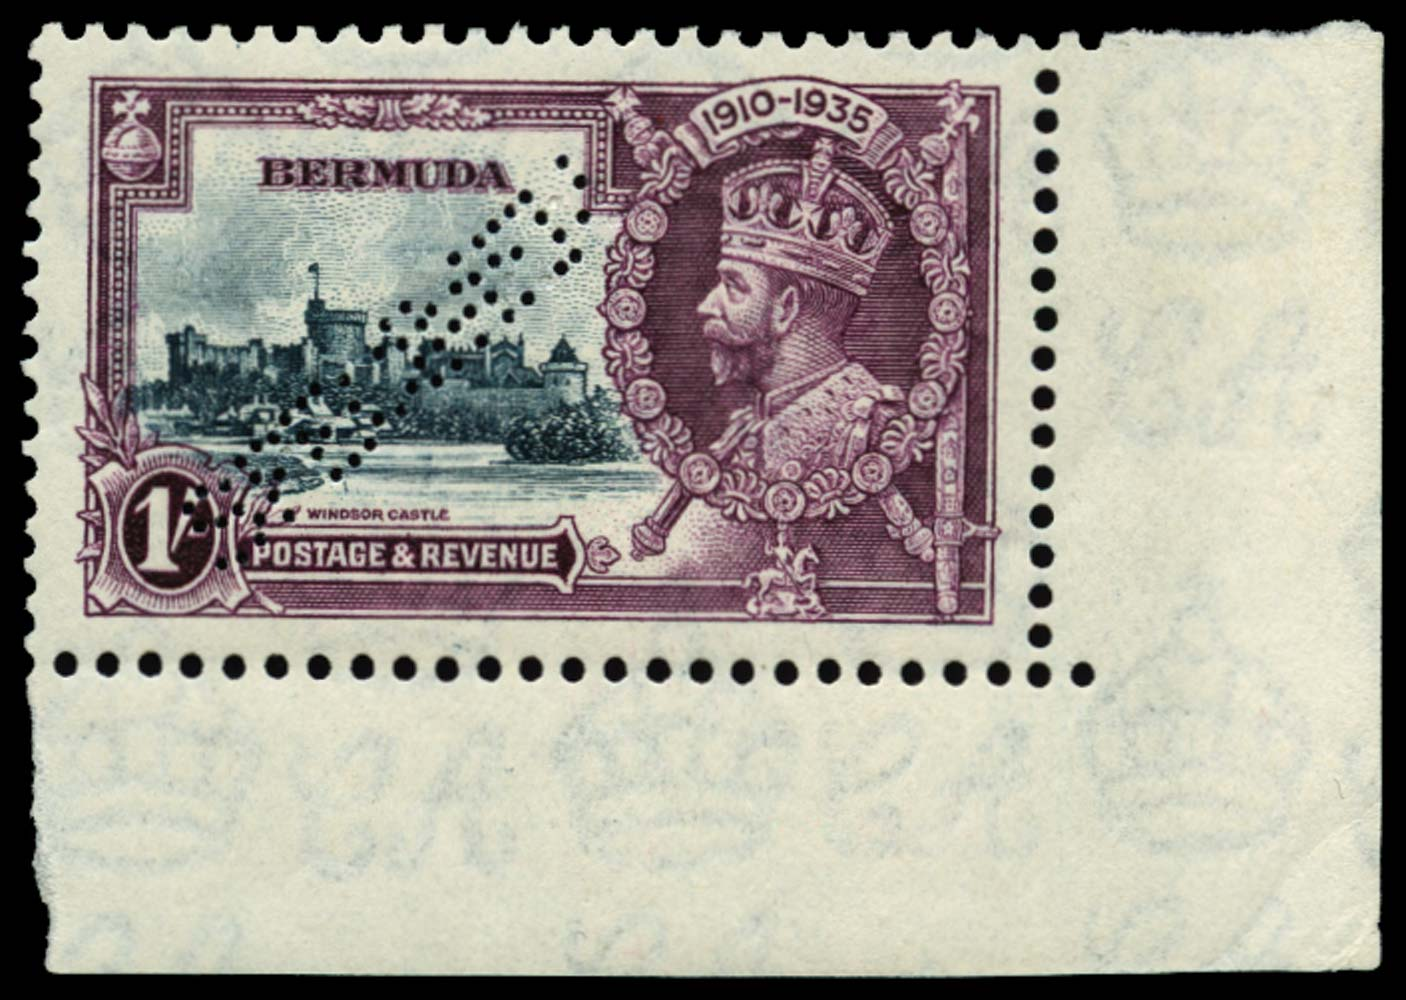 BERMUDA 1935  SG97ks Specimen Silver Jubilee 1s Kite and vertical log unmounted